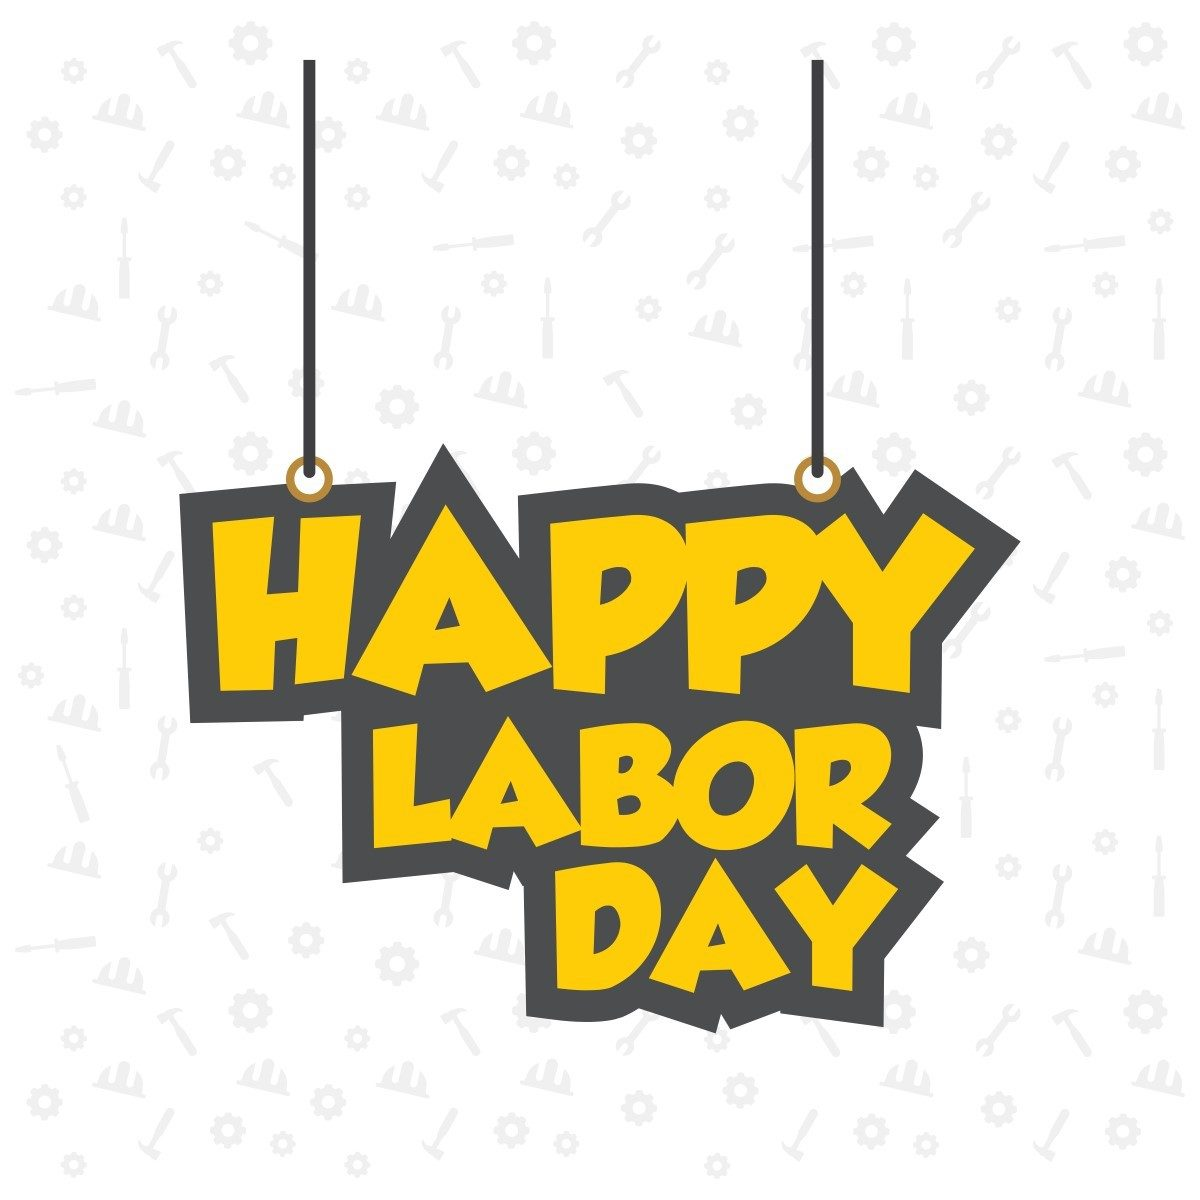 Happy Labor Day --Designed by Freepik